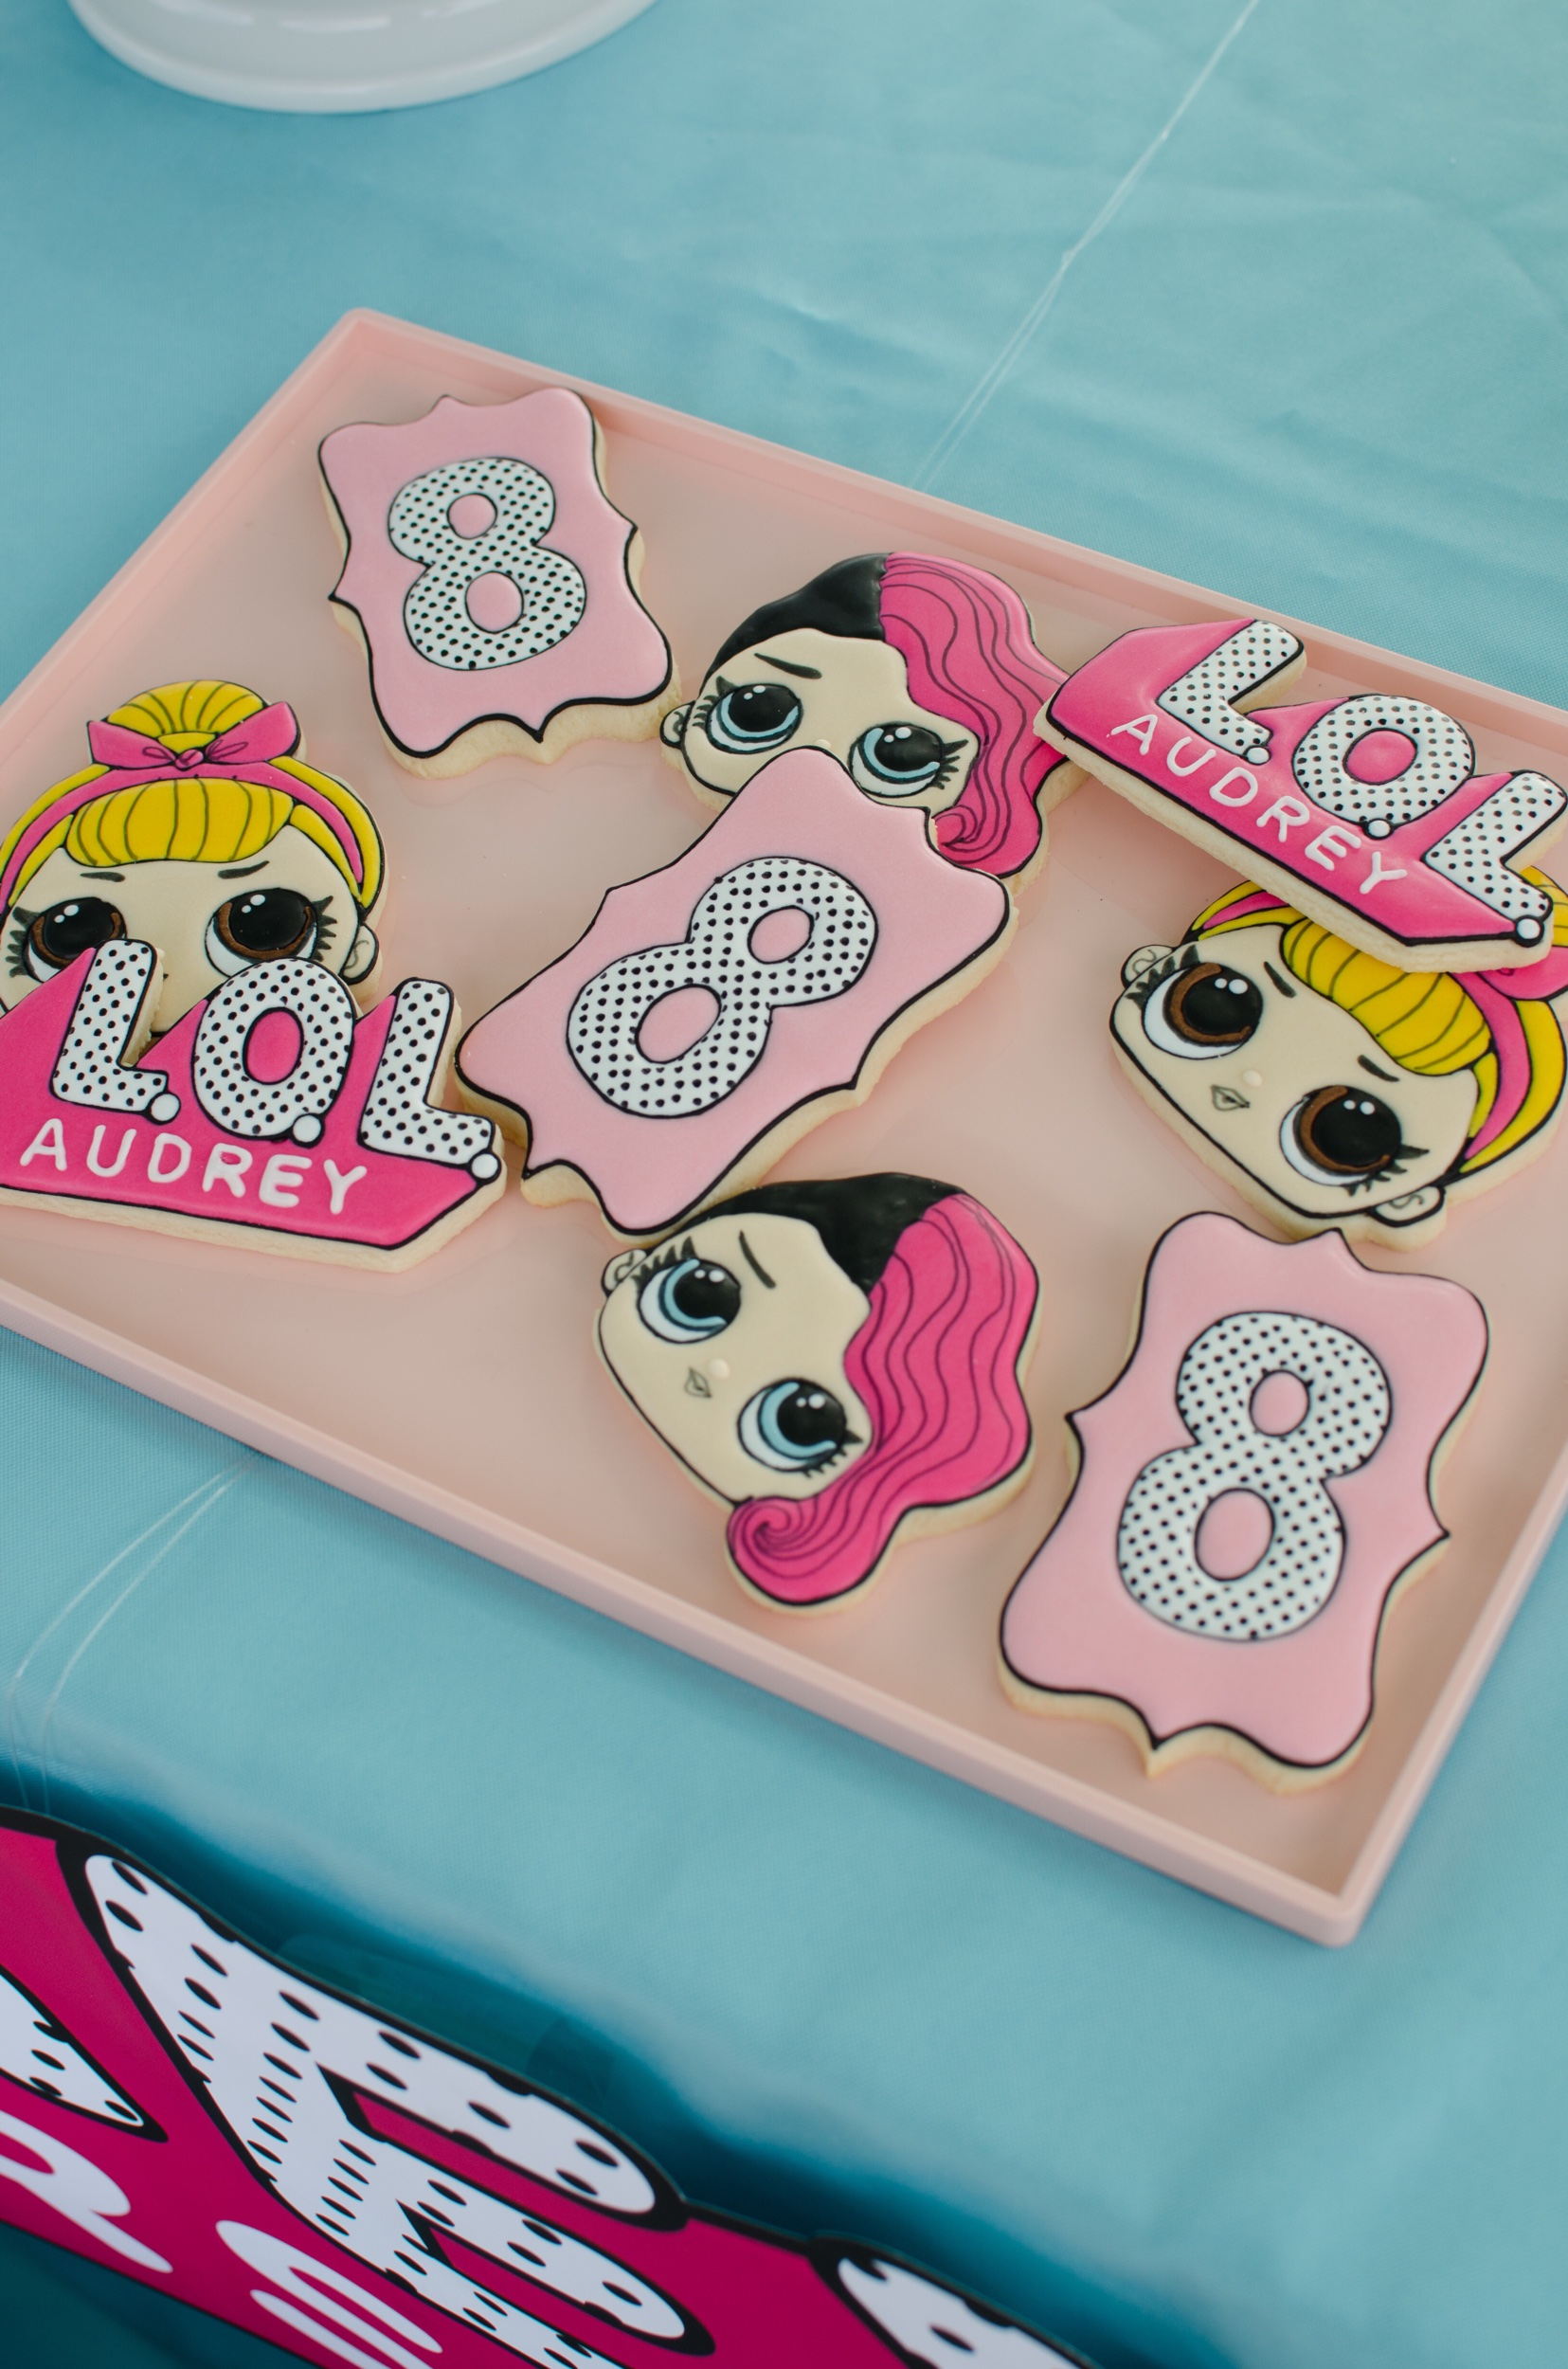 LOL Surprise Birthday Party Sugar Cookies. Party styling by Mint Event Design www.minteventdesign.com